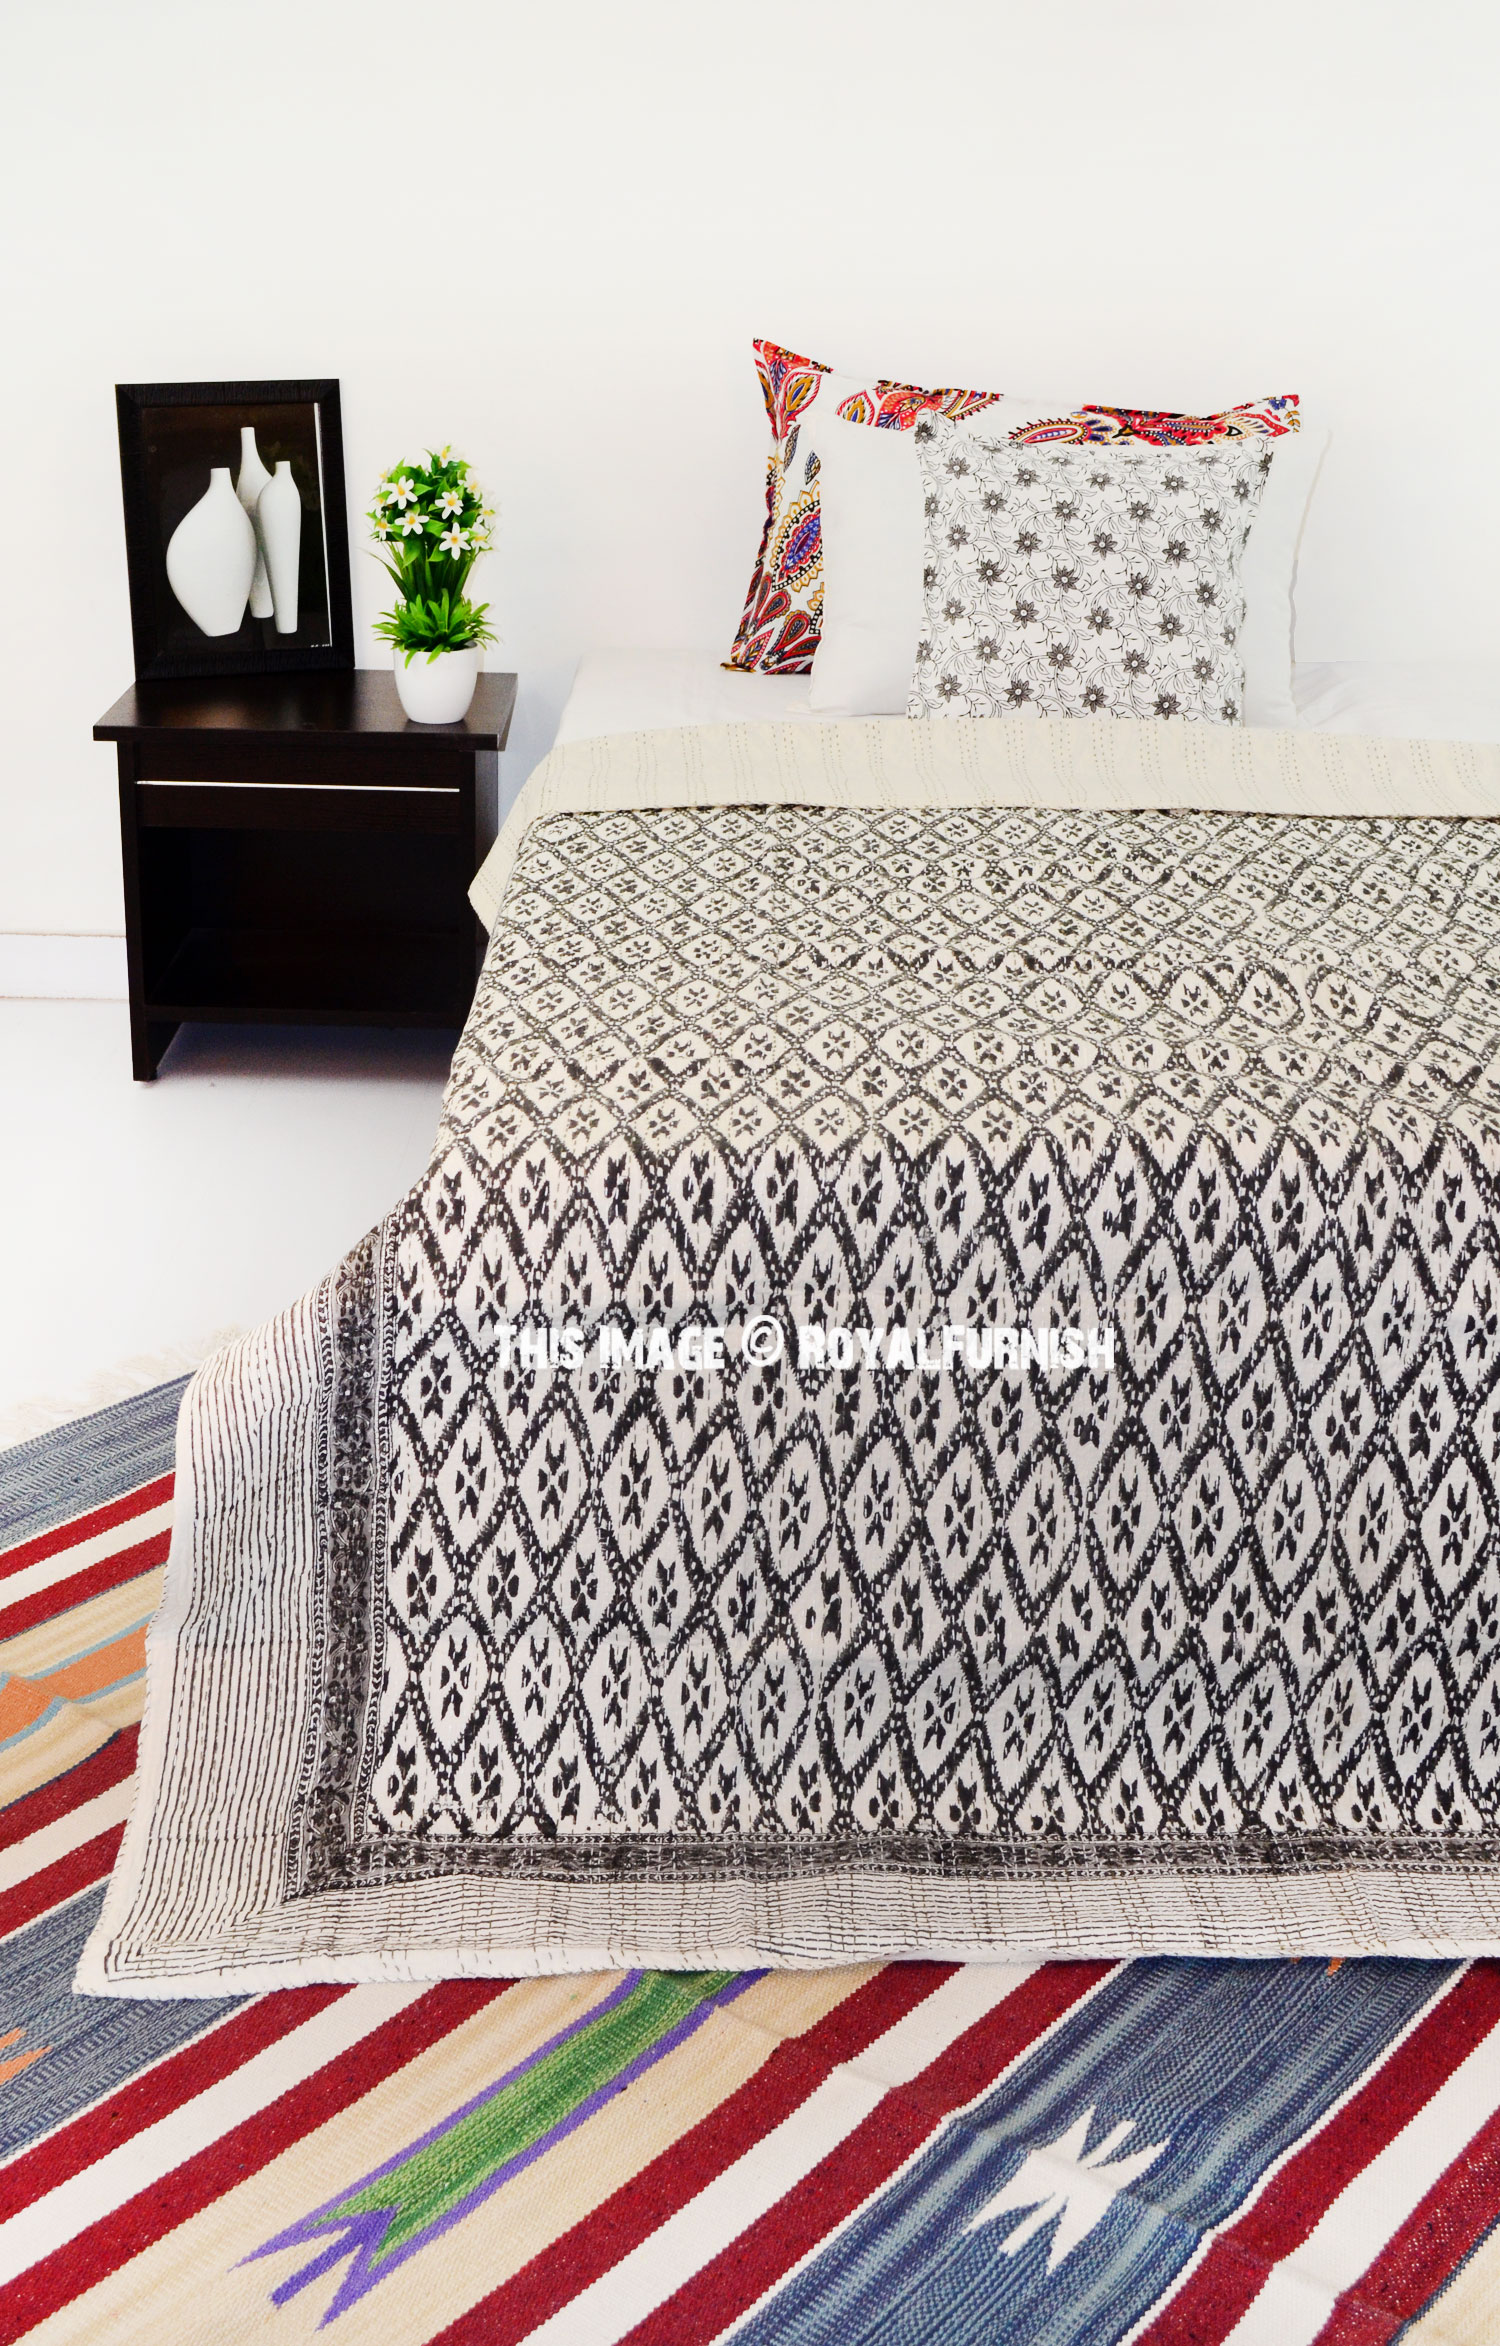 Twin Size Black and White Canvas Printed Ikat Kantha